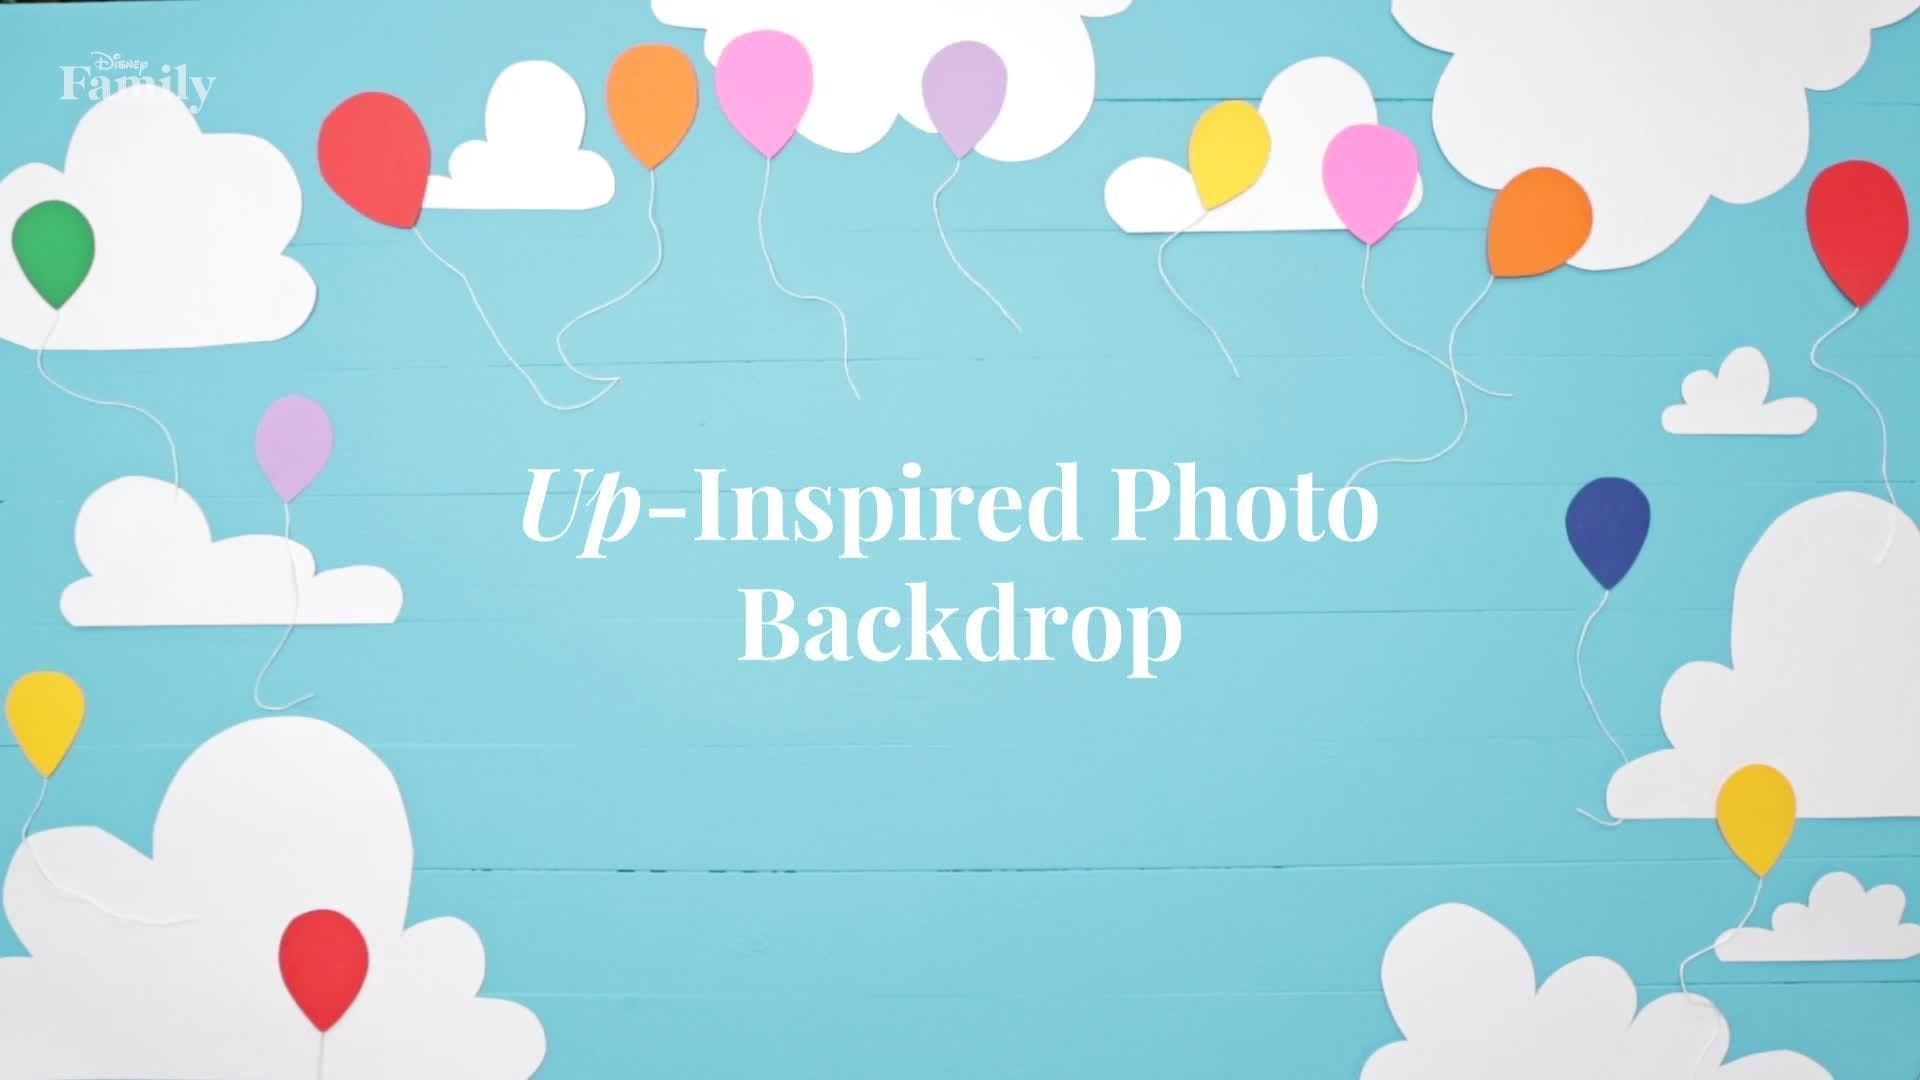 How to Make an UP-Inspired Photo Backdrop | Disney DIY by Disney Family